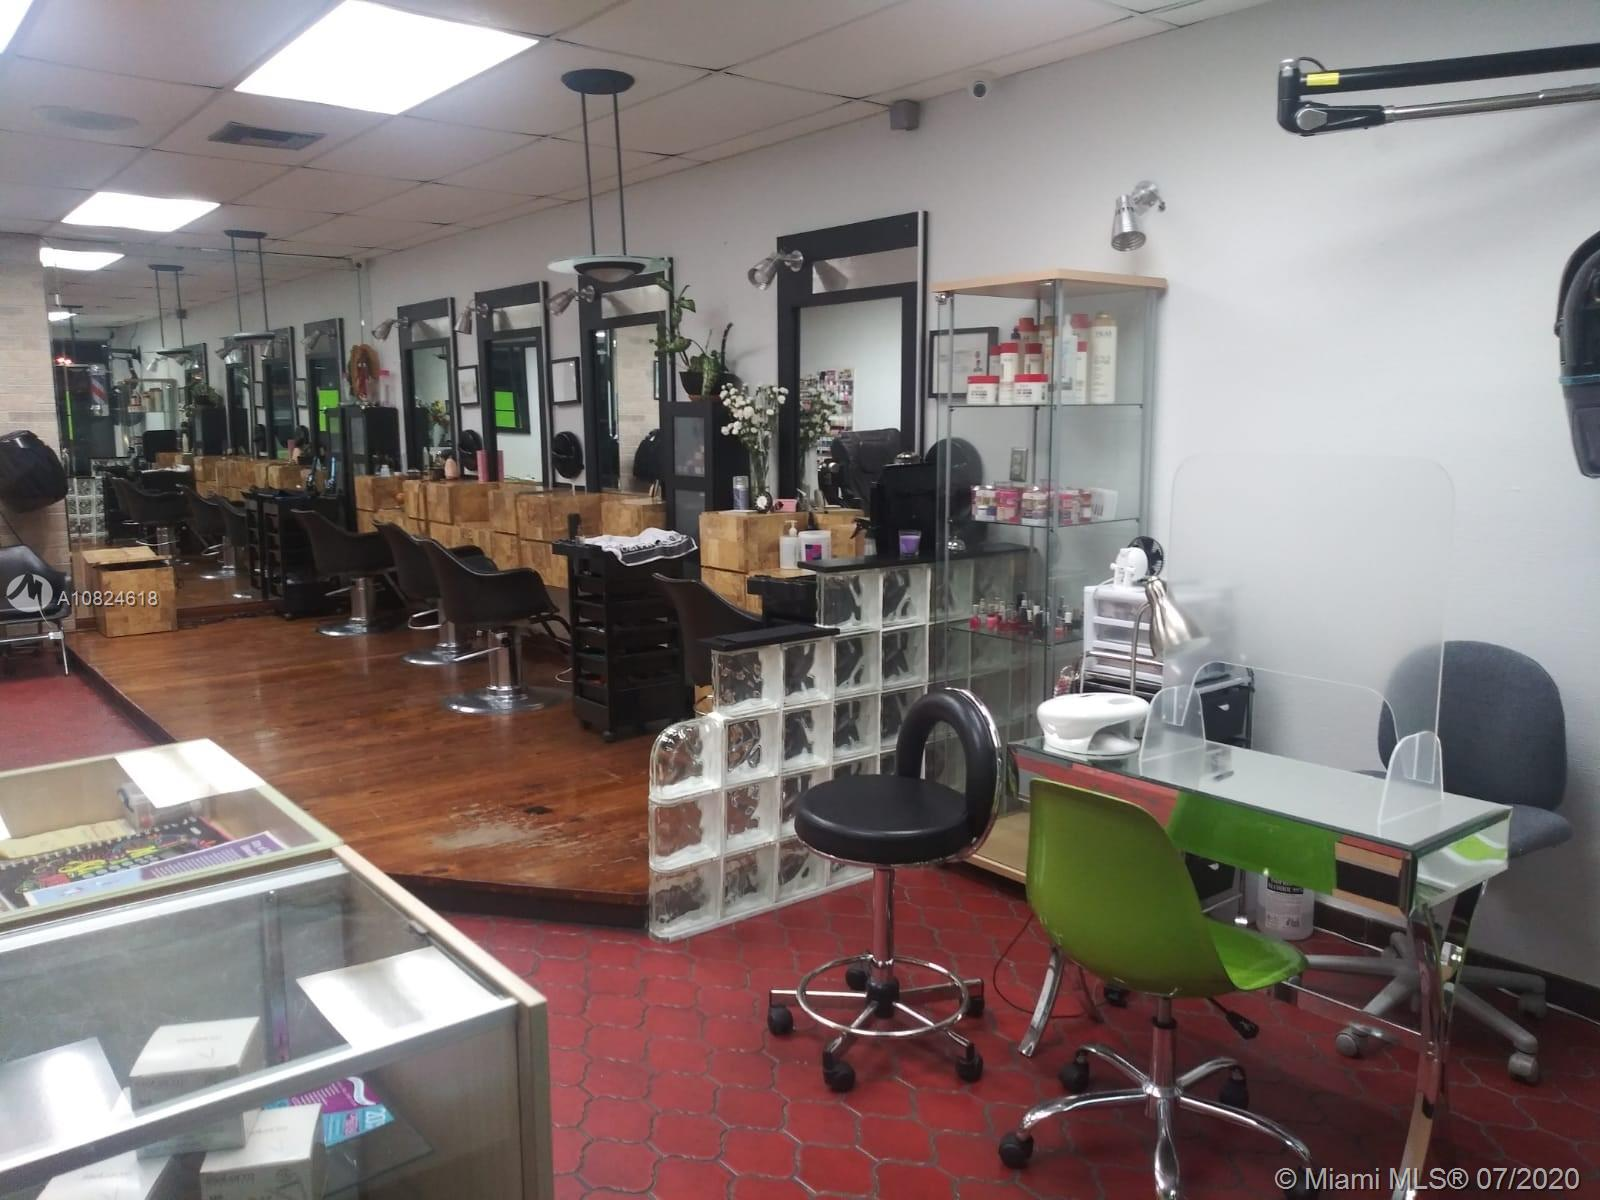 6761 W Flager, Miami, Florida 33144, ,Business Opportunity,For Sale,6761 W Flager,A10824618